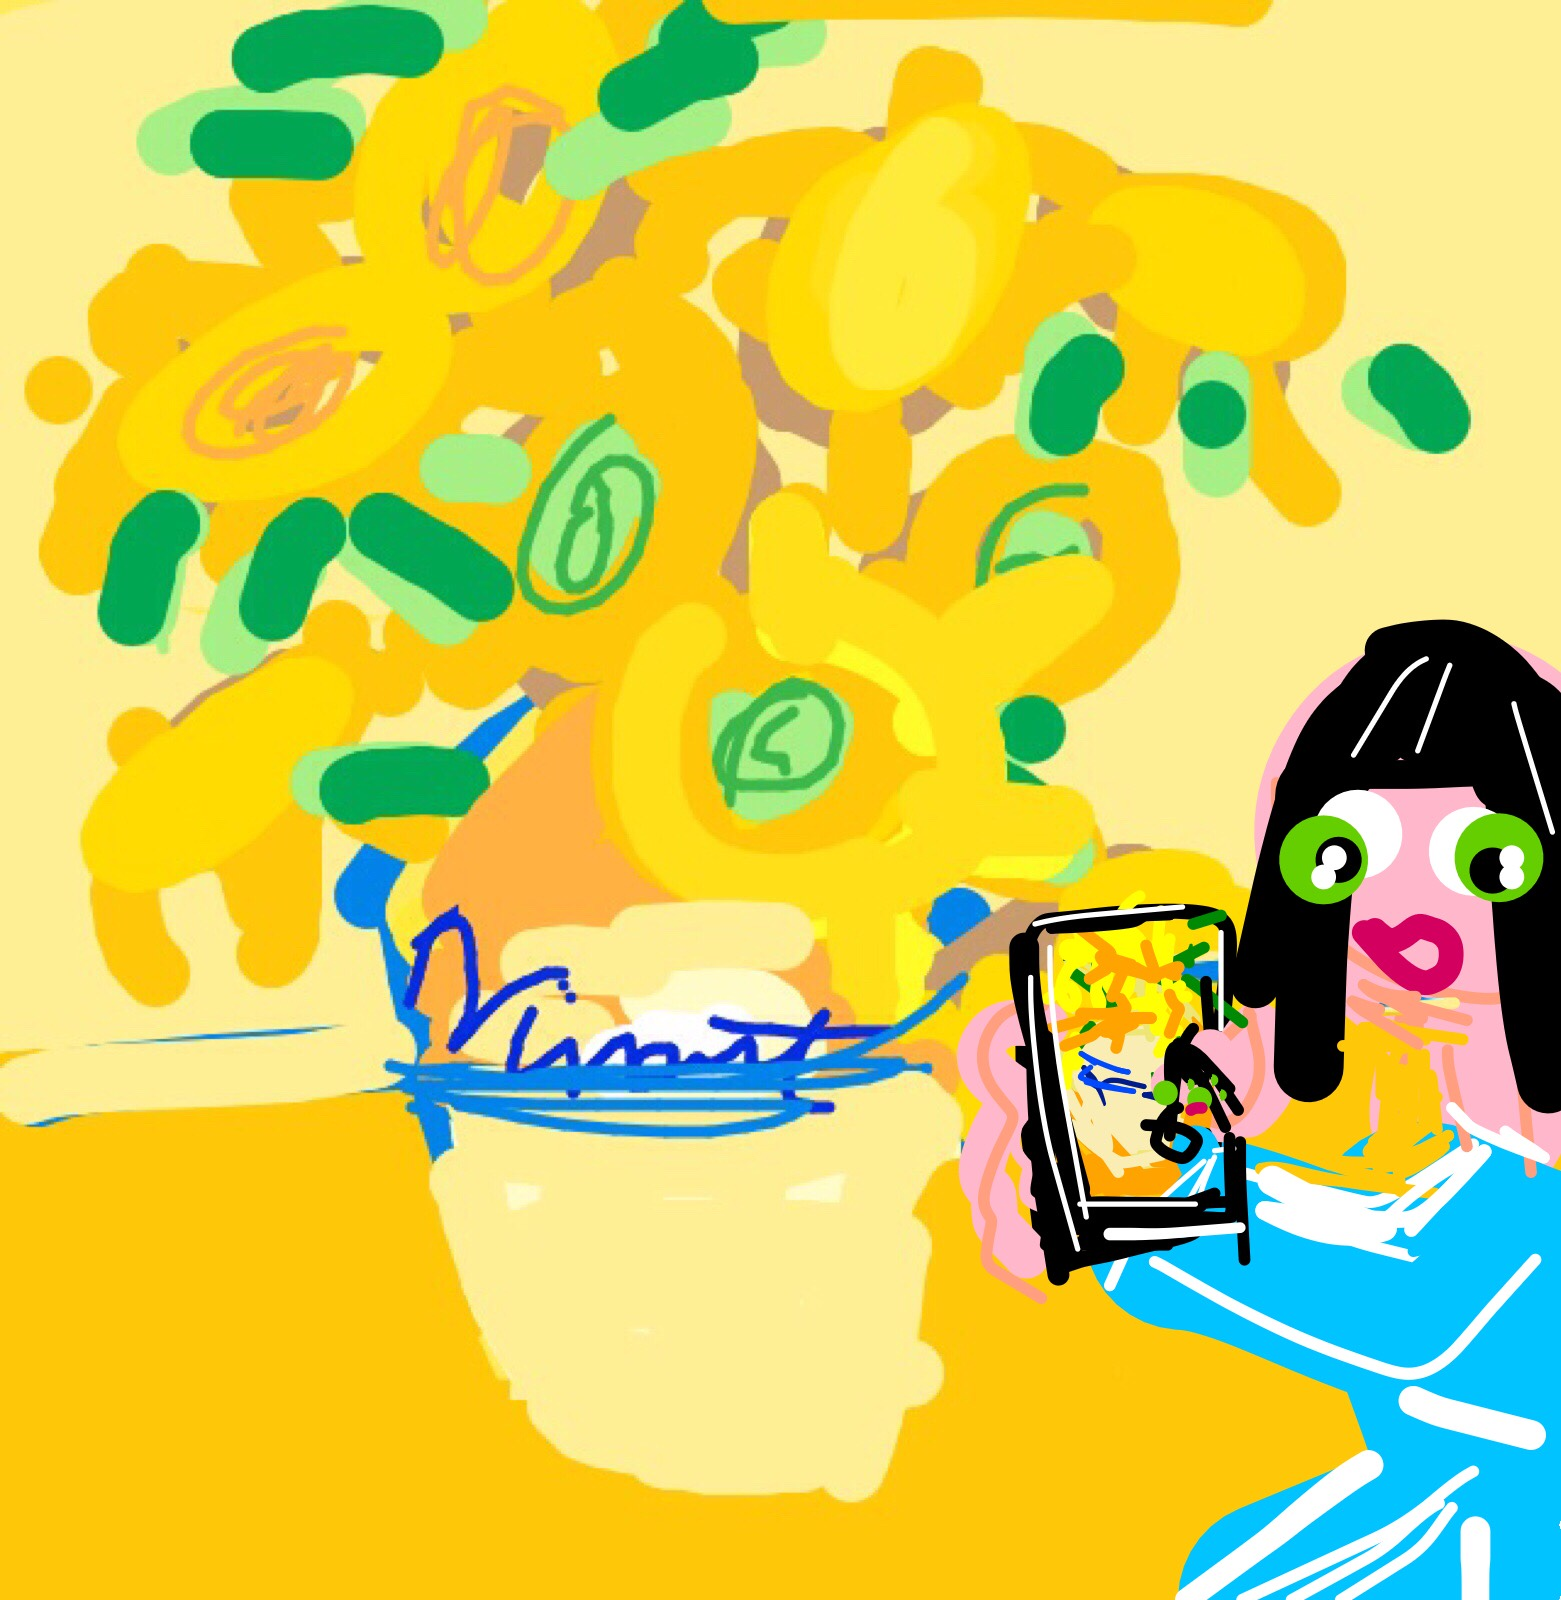 #MuseumSelfie with Sunflowers by Vincent van Gogh, 1888 at @NationalGallery